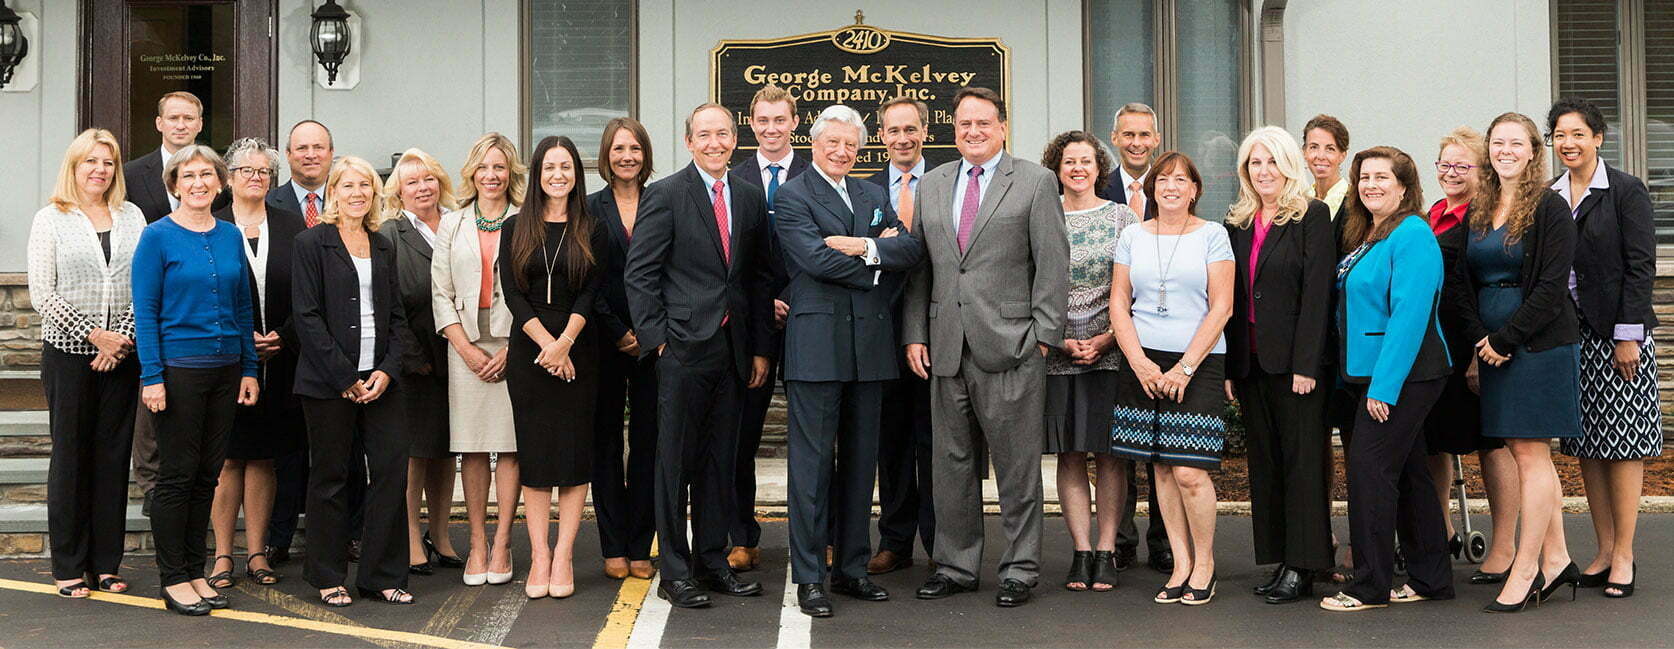 George McKelvey Co. Team